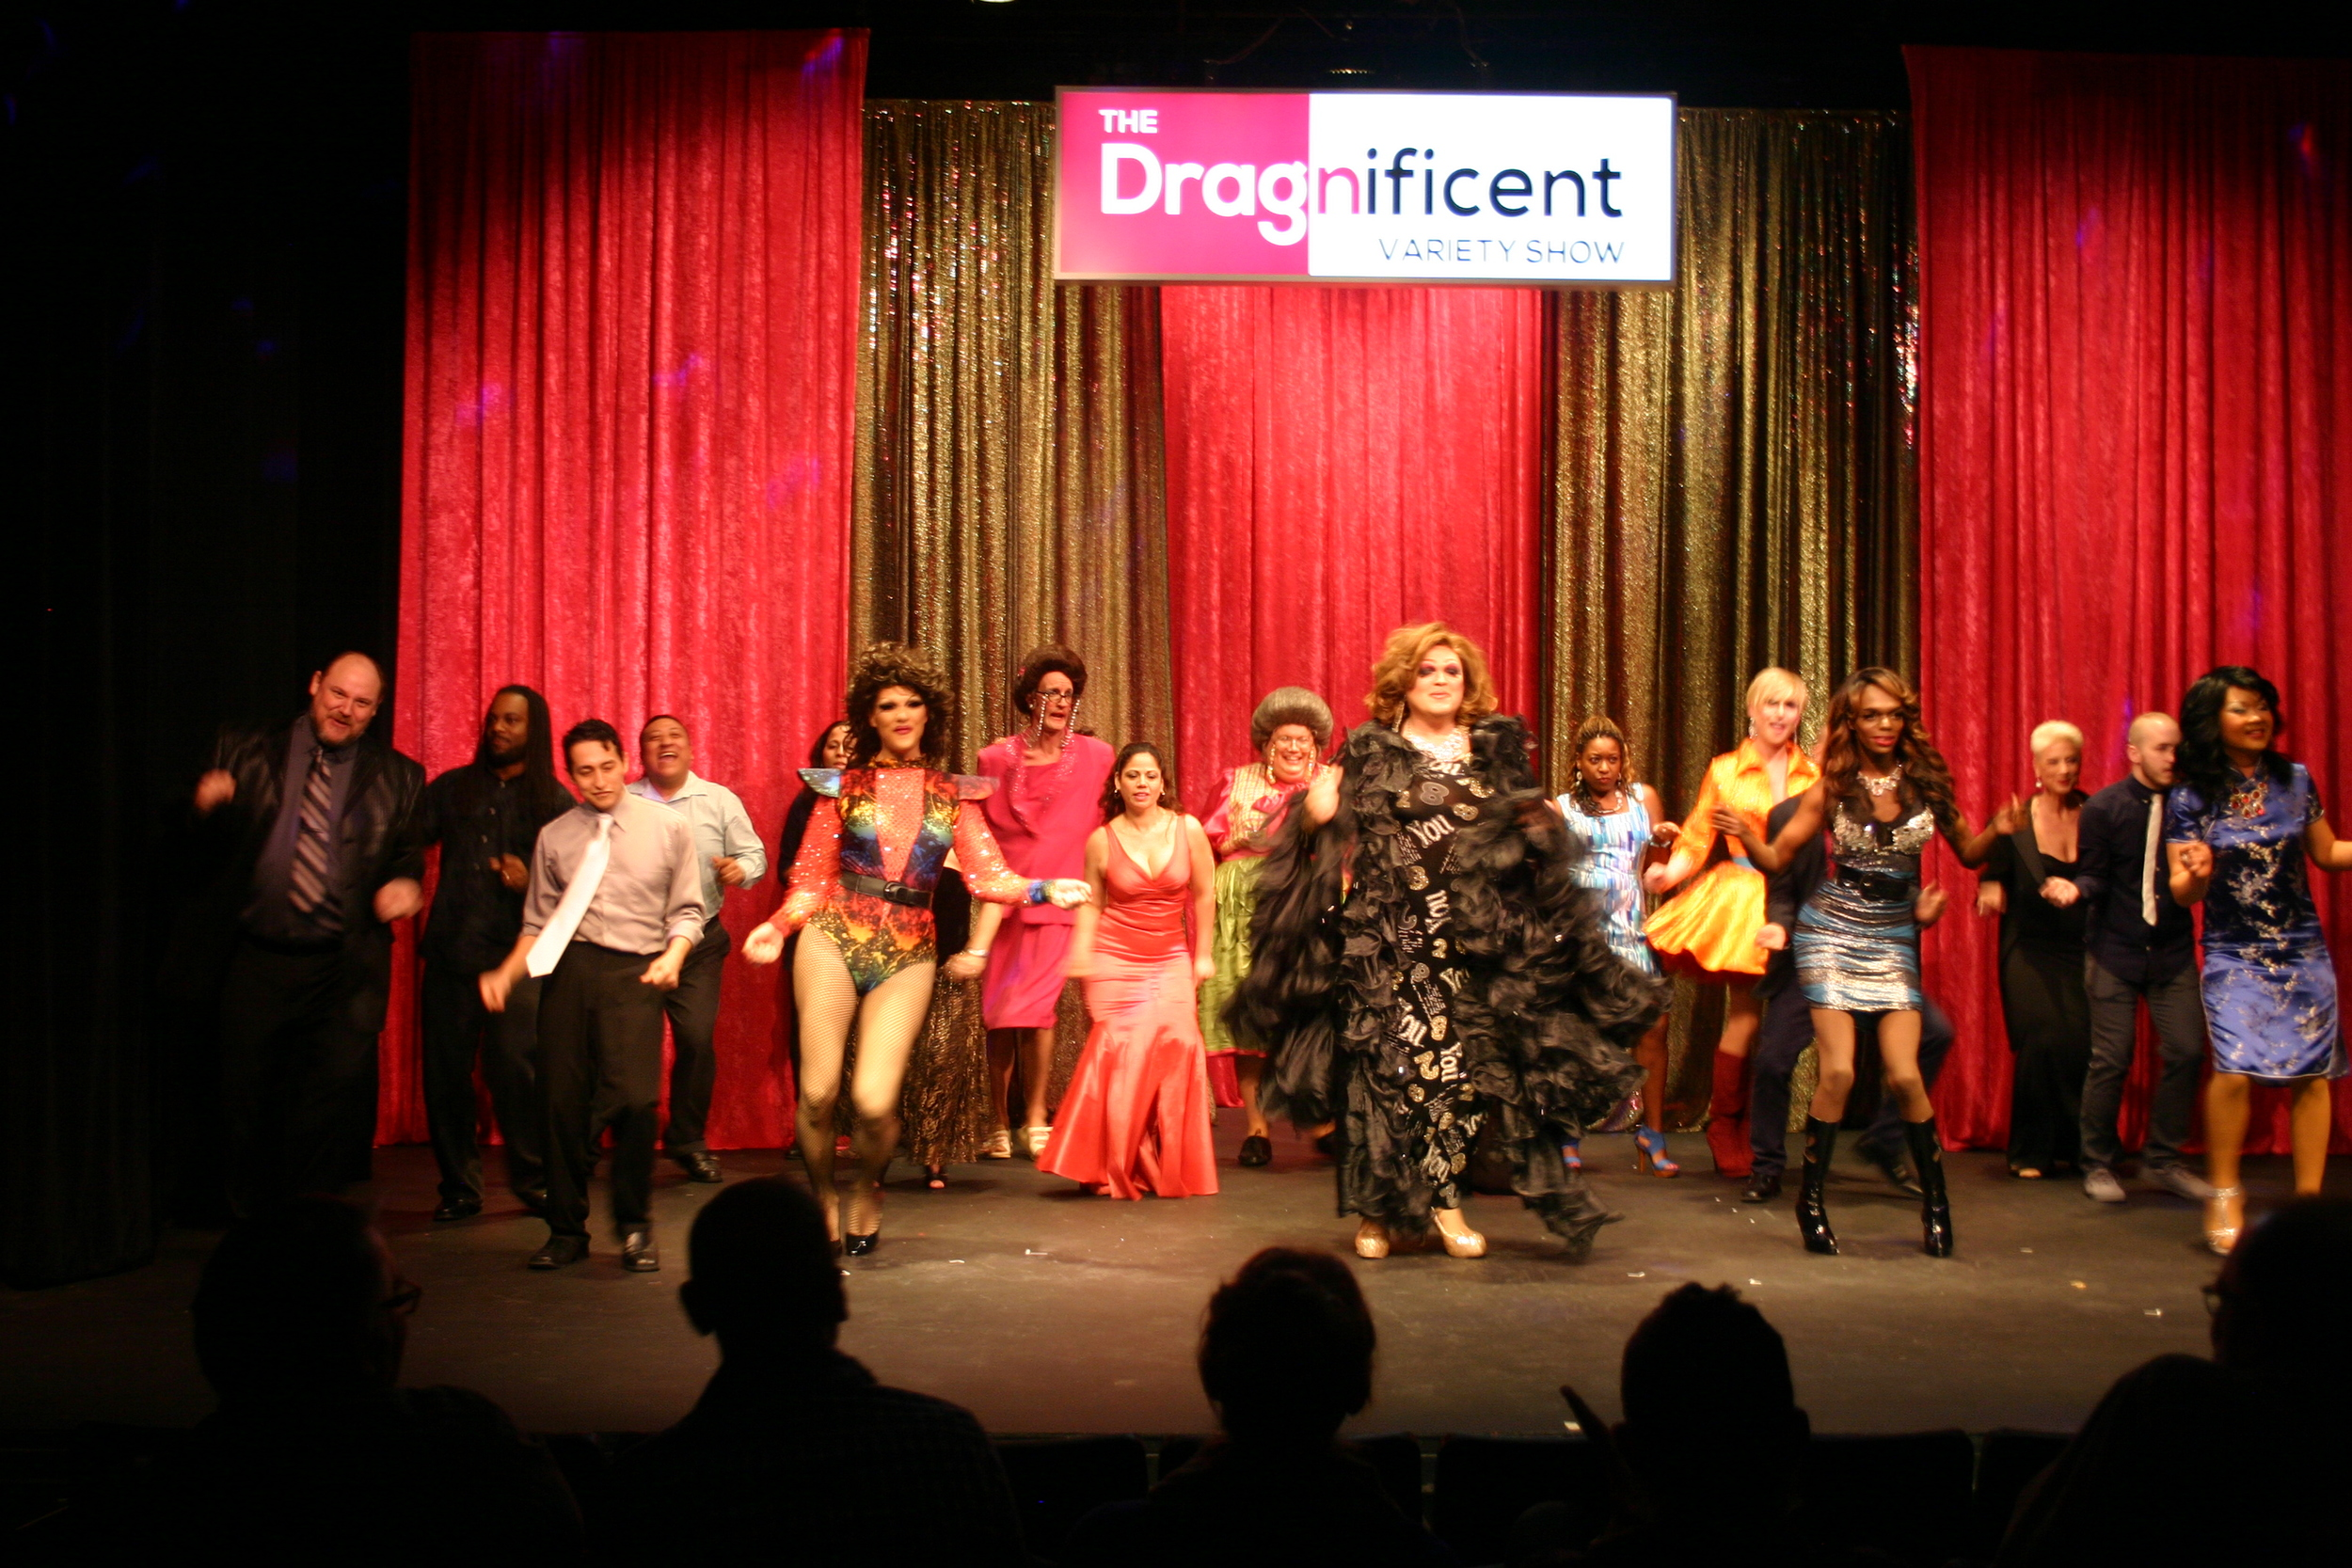 Cast of DragNificent Variety Show  ( March 12, 2015)